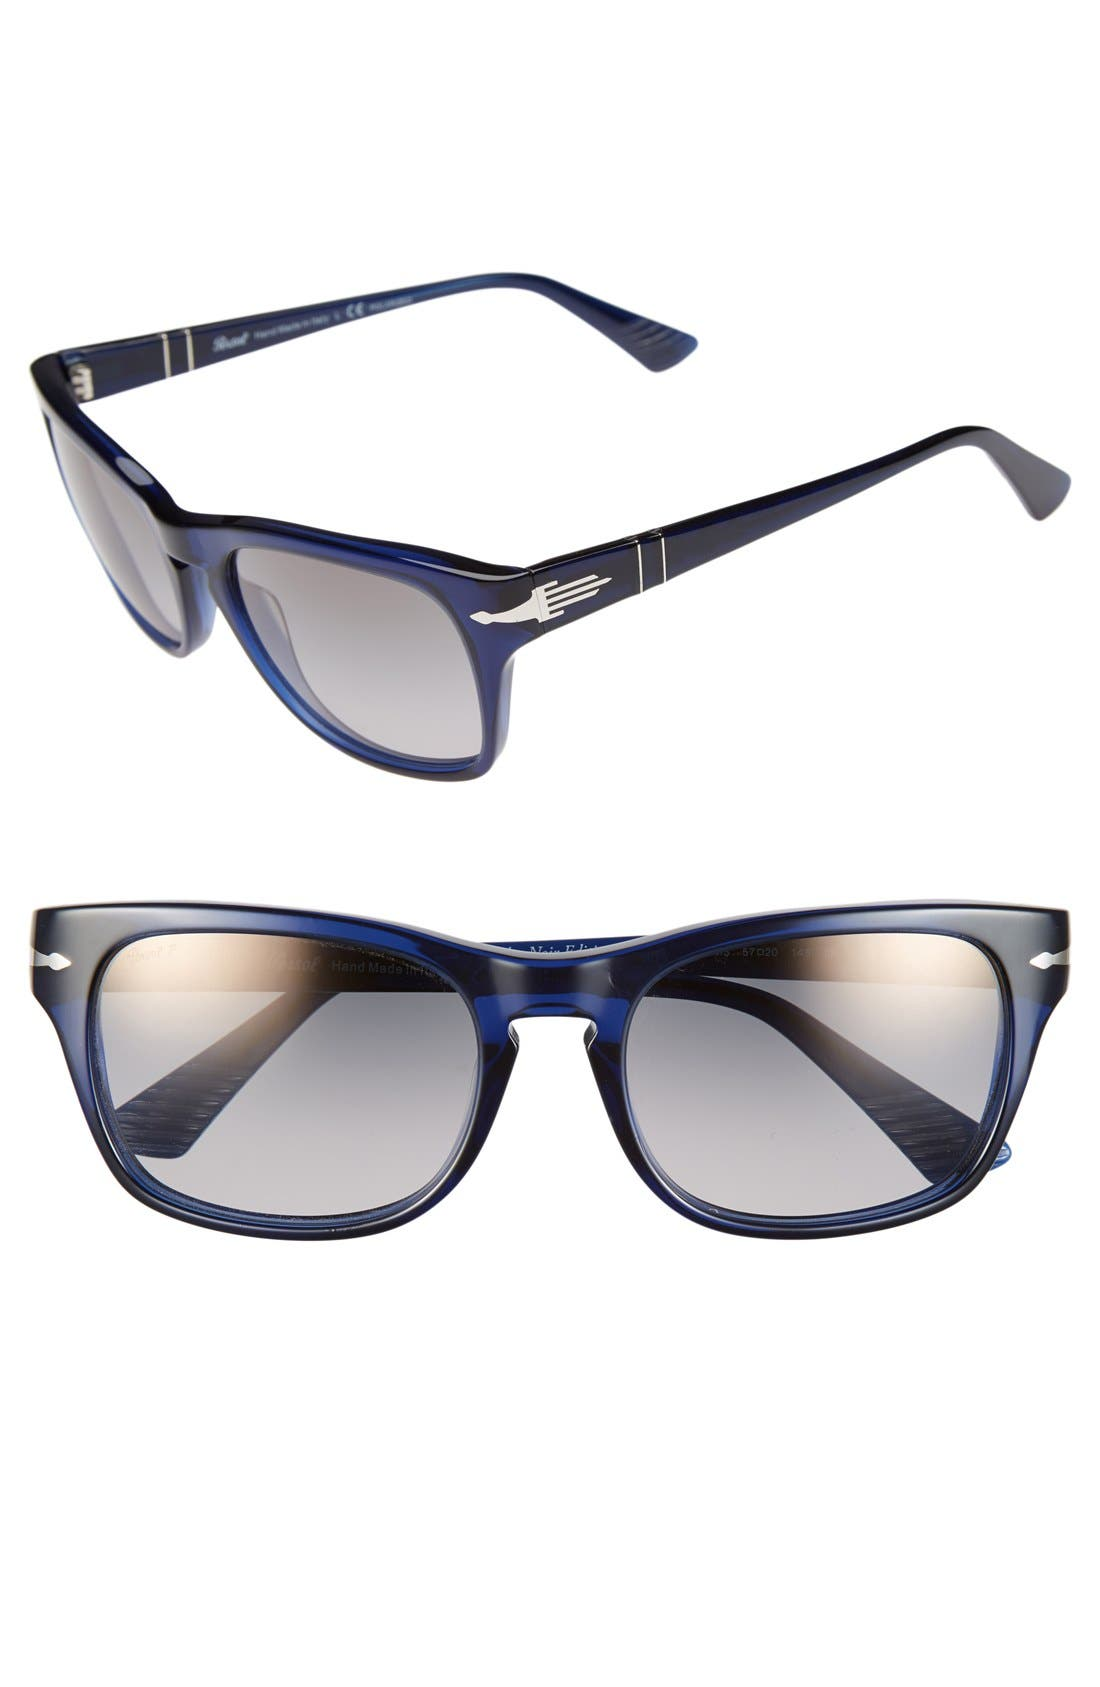 Alternate Image 1 Selected - Persol 'Suprema' 57mm Polarized Sunglasses